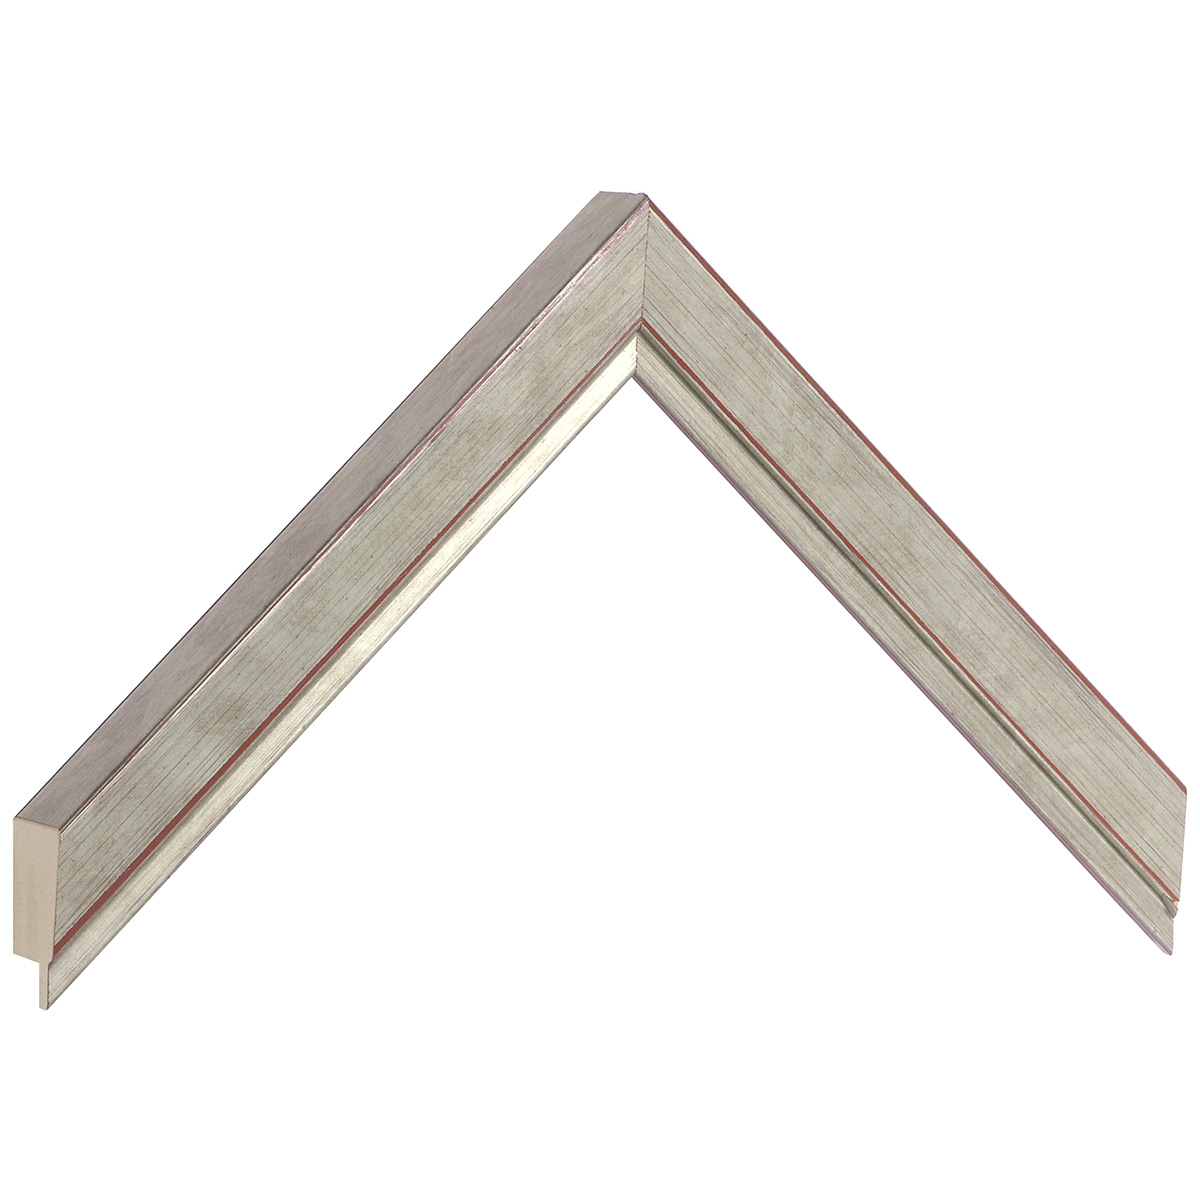 Moulding ayous, width 22mm height 22 - silver finish